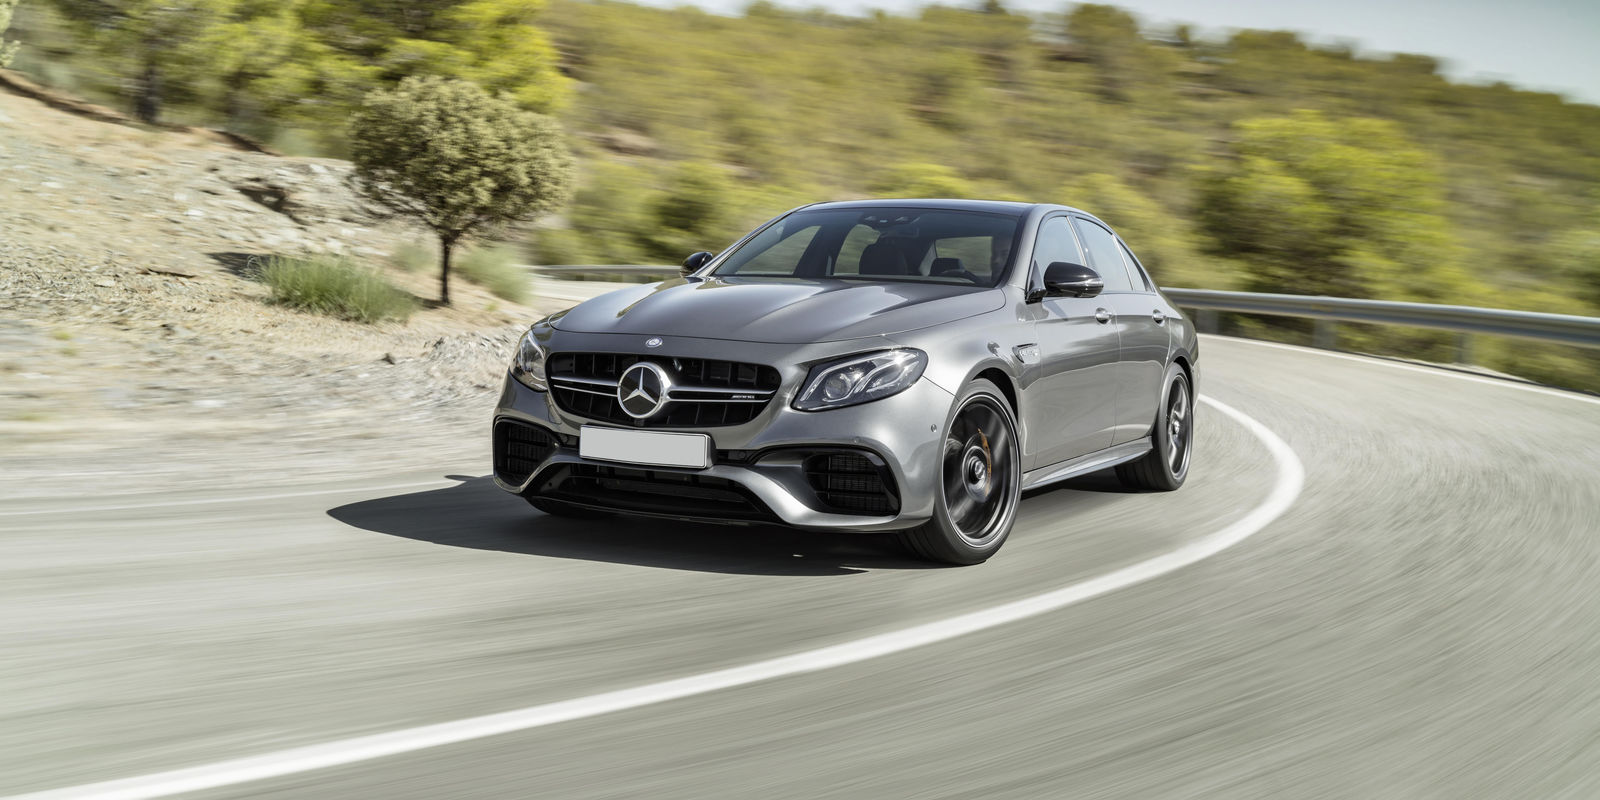 Mercedes AMG E63 V8-powered rocket ship with a classy interior -5 seats - 31 MPG